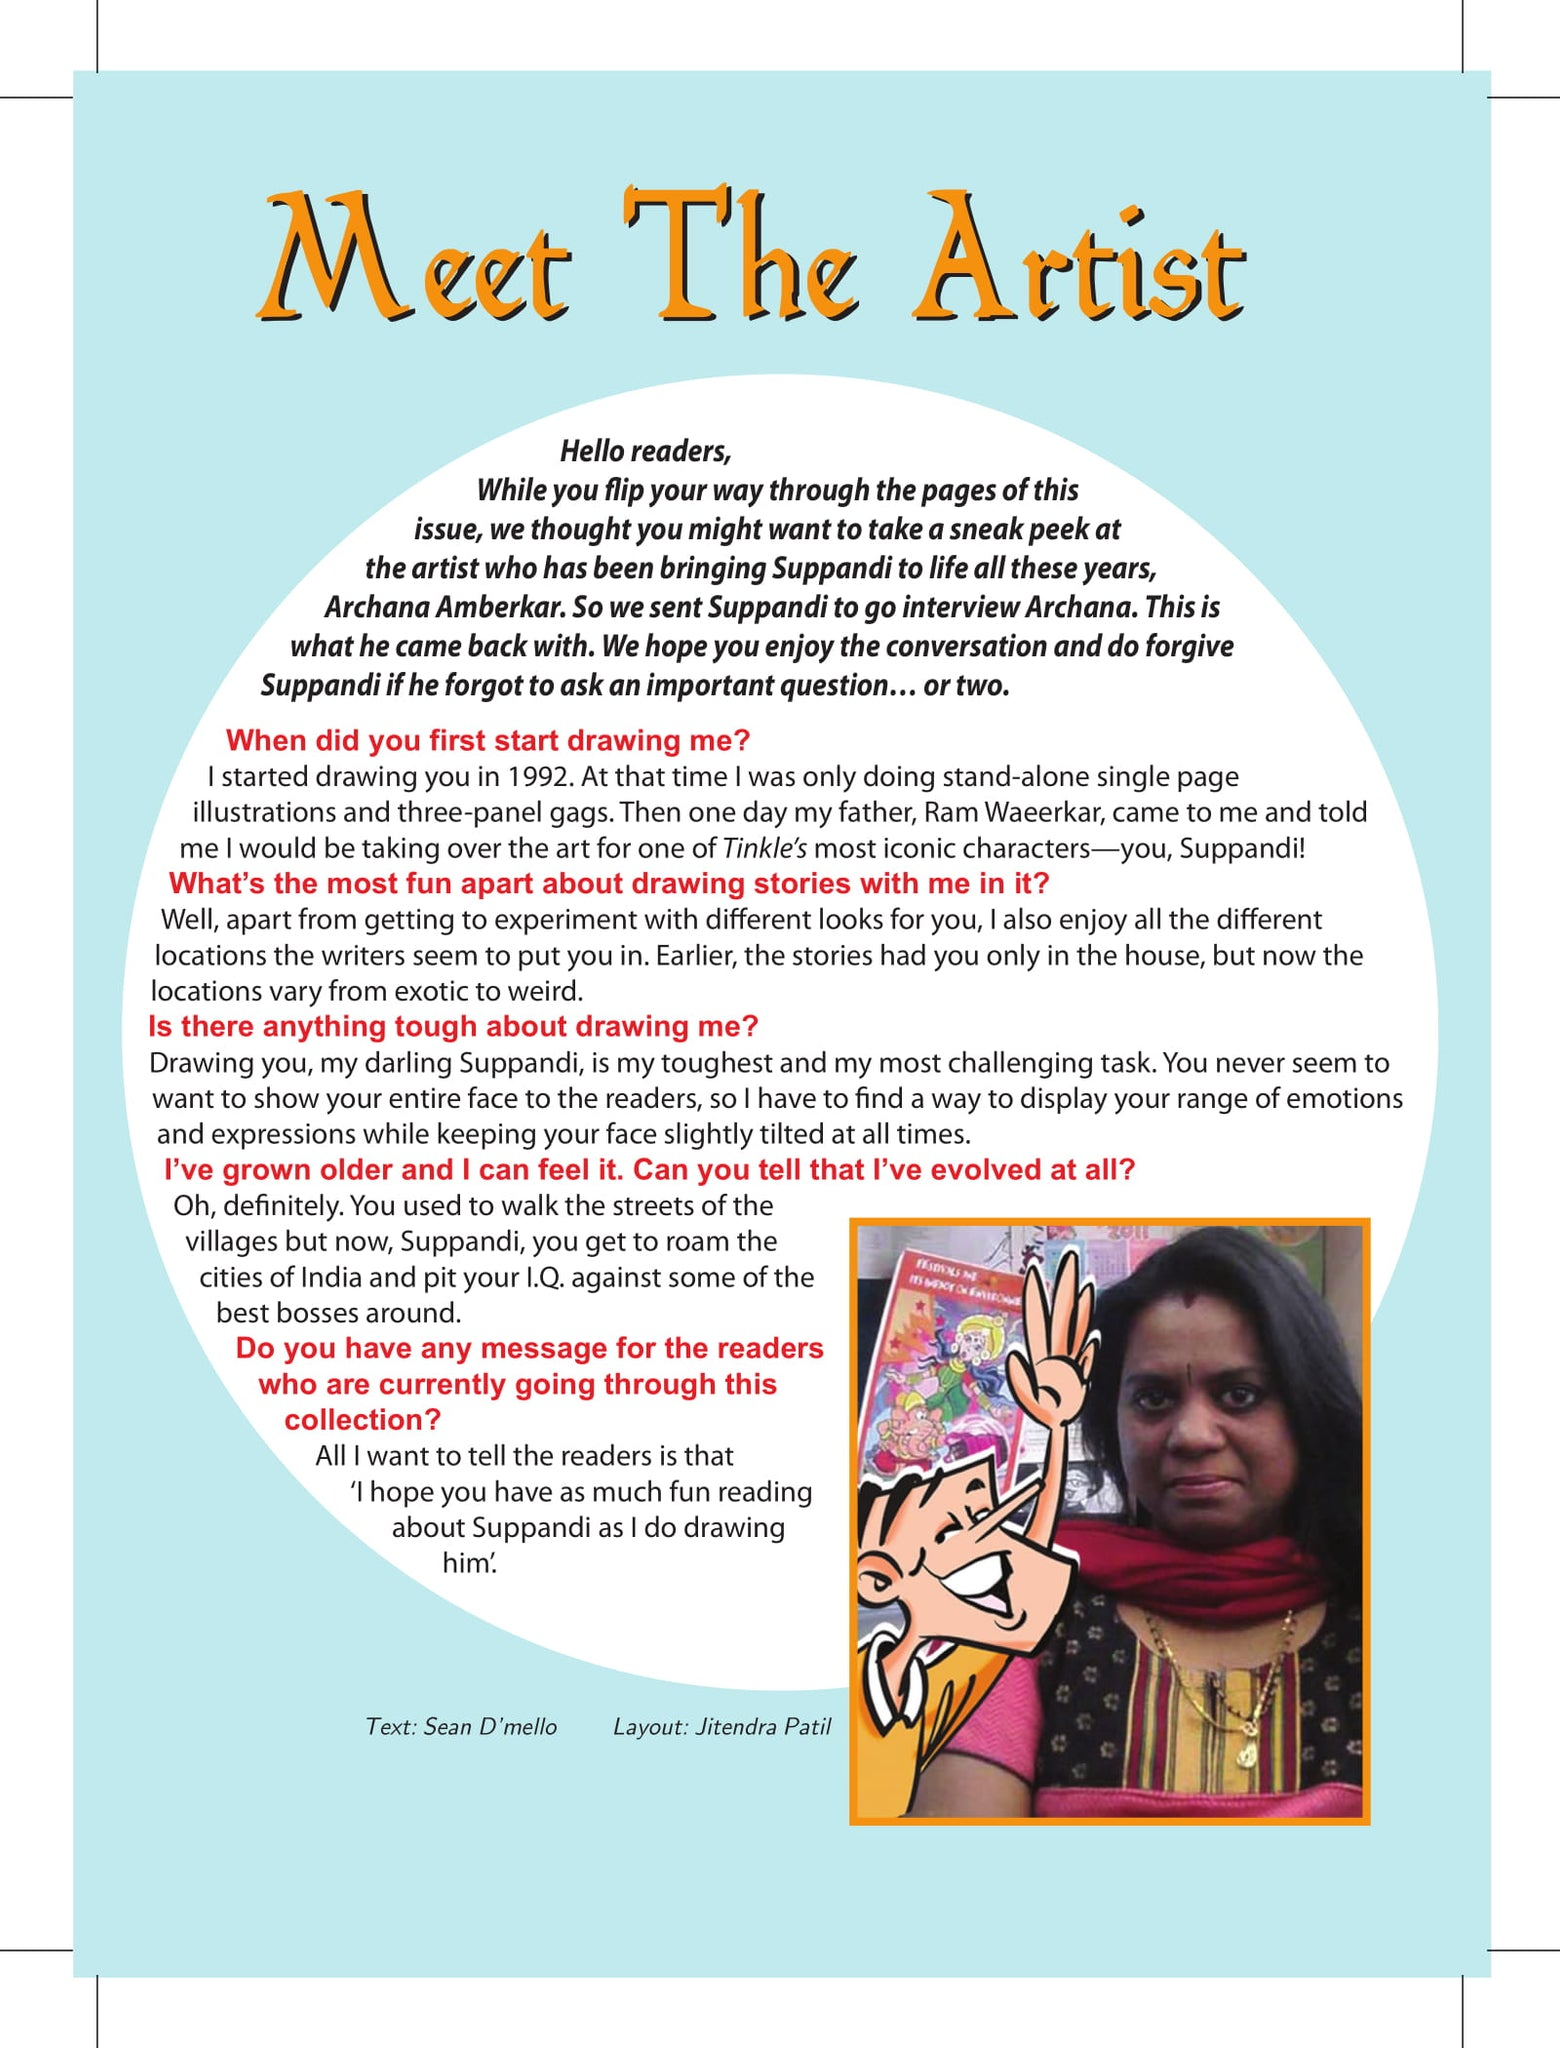 Suppandi interviews his maker, Archana Amberkar